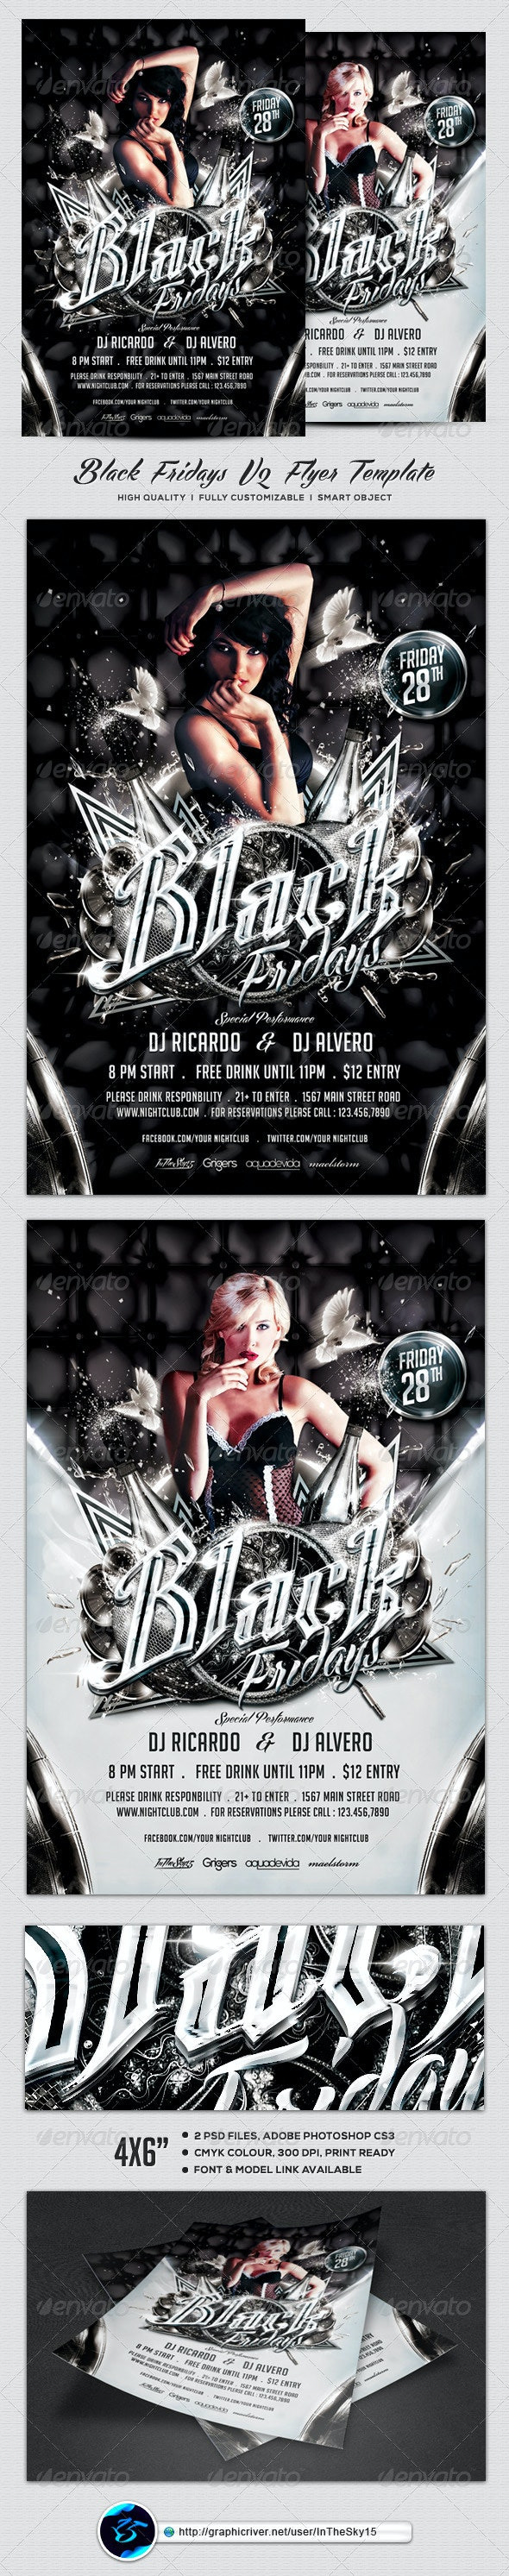 Black Fridays V2 Flyer Template - Clubs & Parties Events